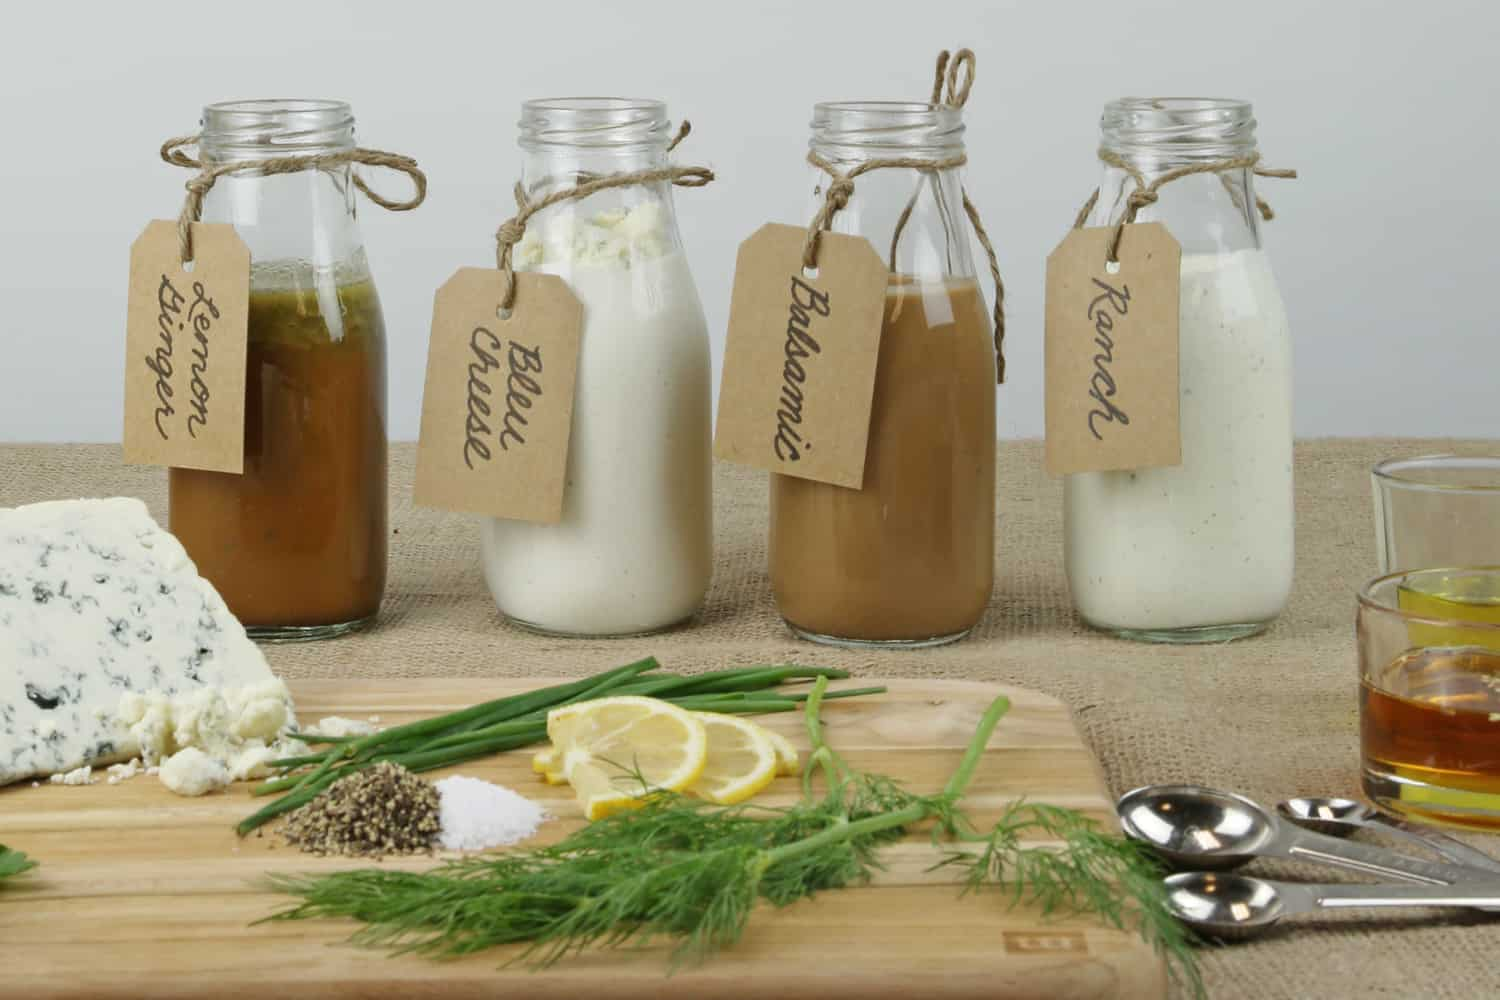 Salad Dressings Made from Scratch